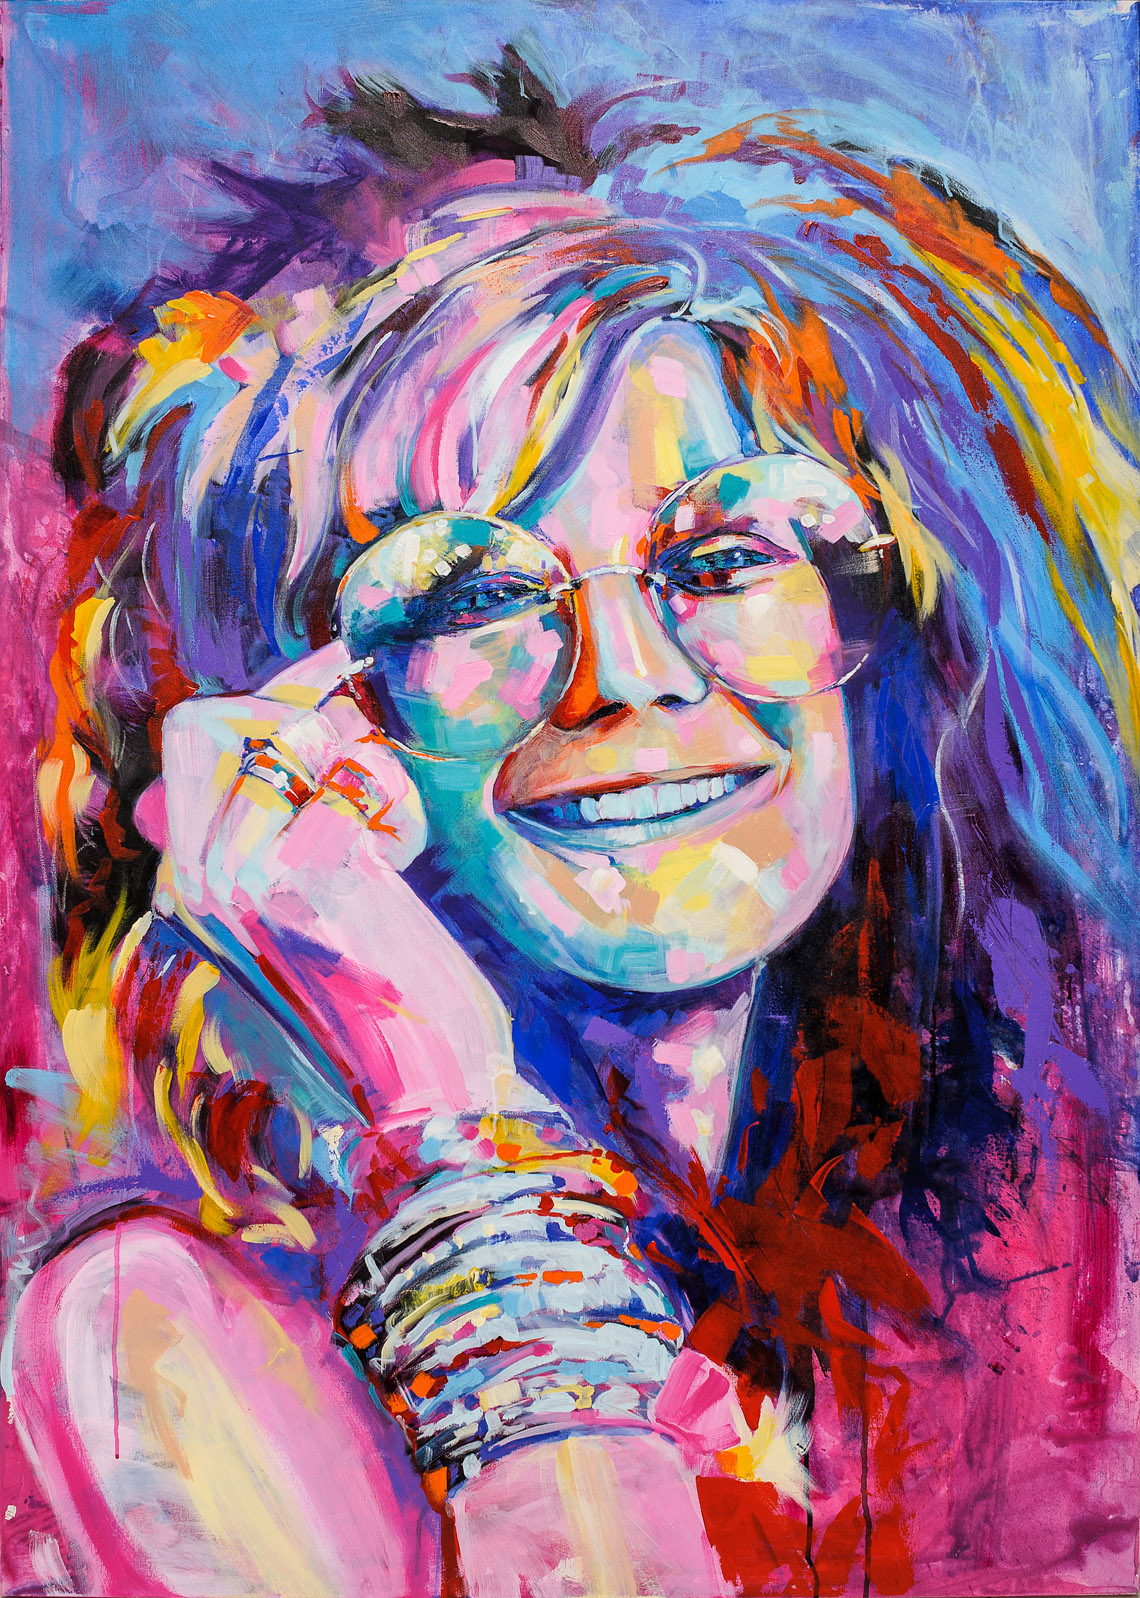 Janis Joplin - A Collection